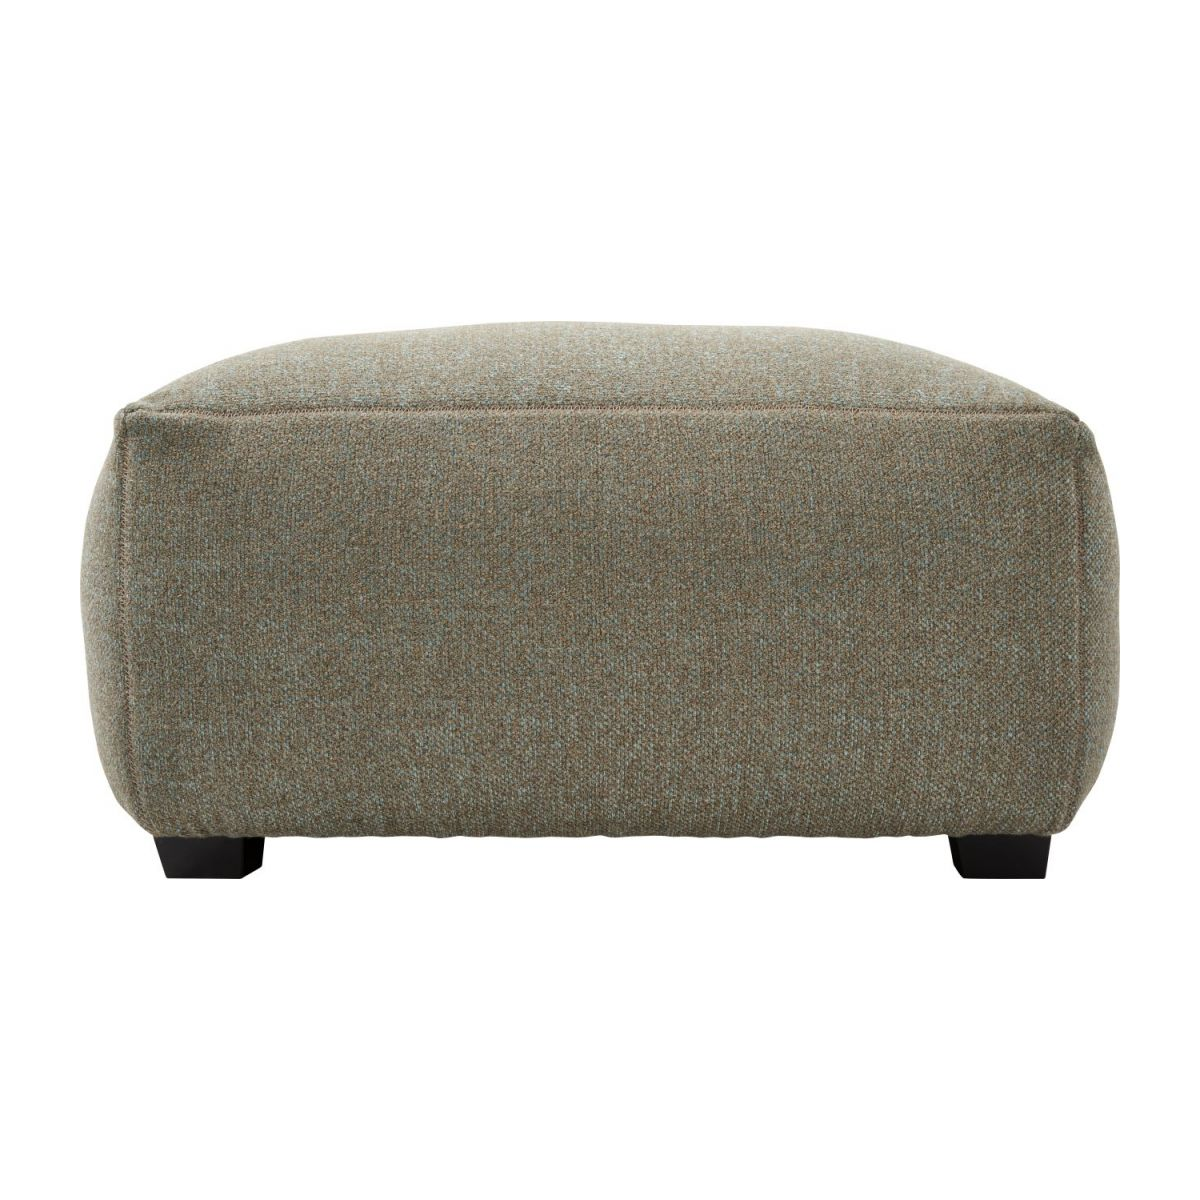 Footstool in Lecce fabric, slade grey n°4